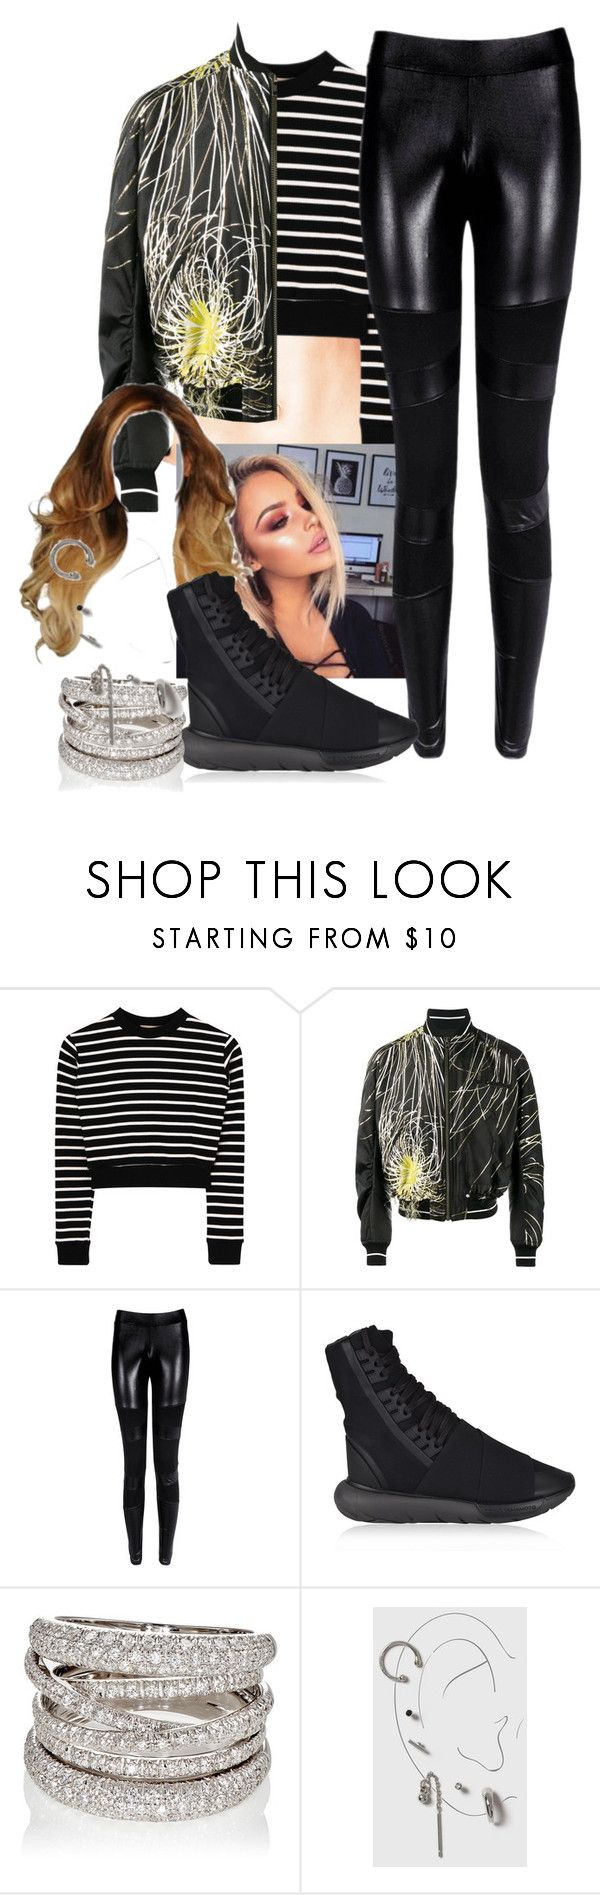 """""""Fem! Jimin"""" by elliepetkova ❤ liked on Polyvore featuring Haider Ackermann, Y-3, Sidney Garber, Topshop, Looks, performing, nottoday, bts and jimin"""